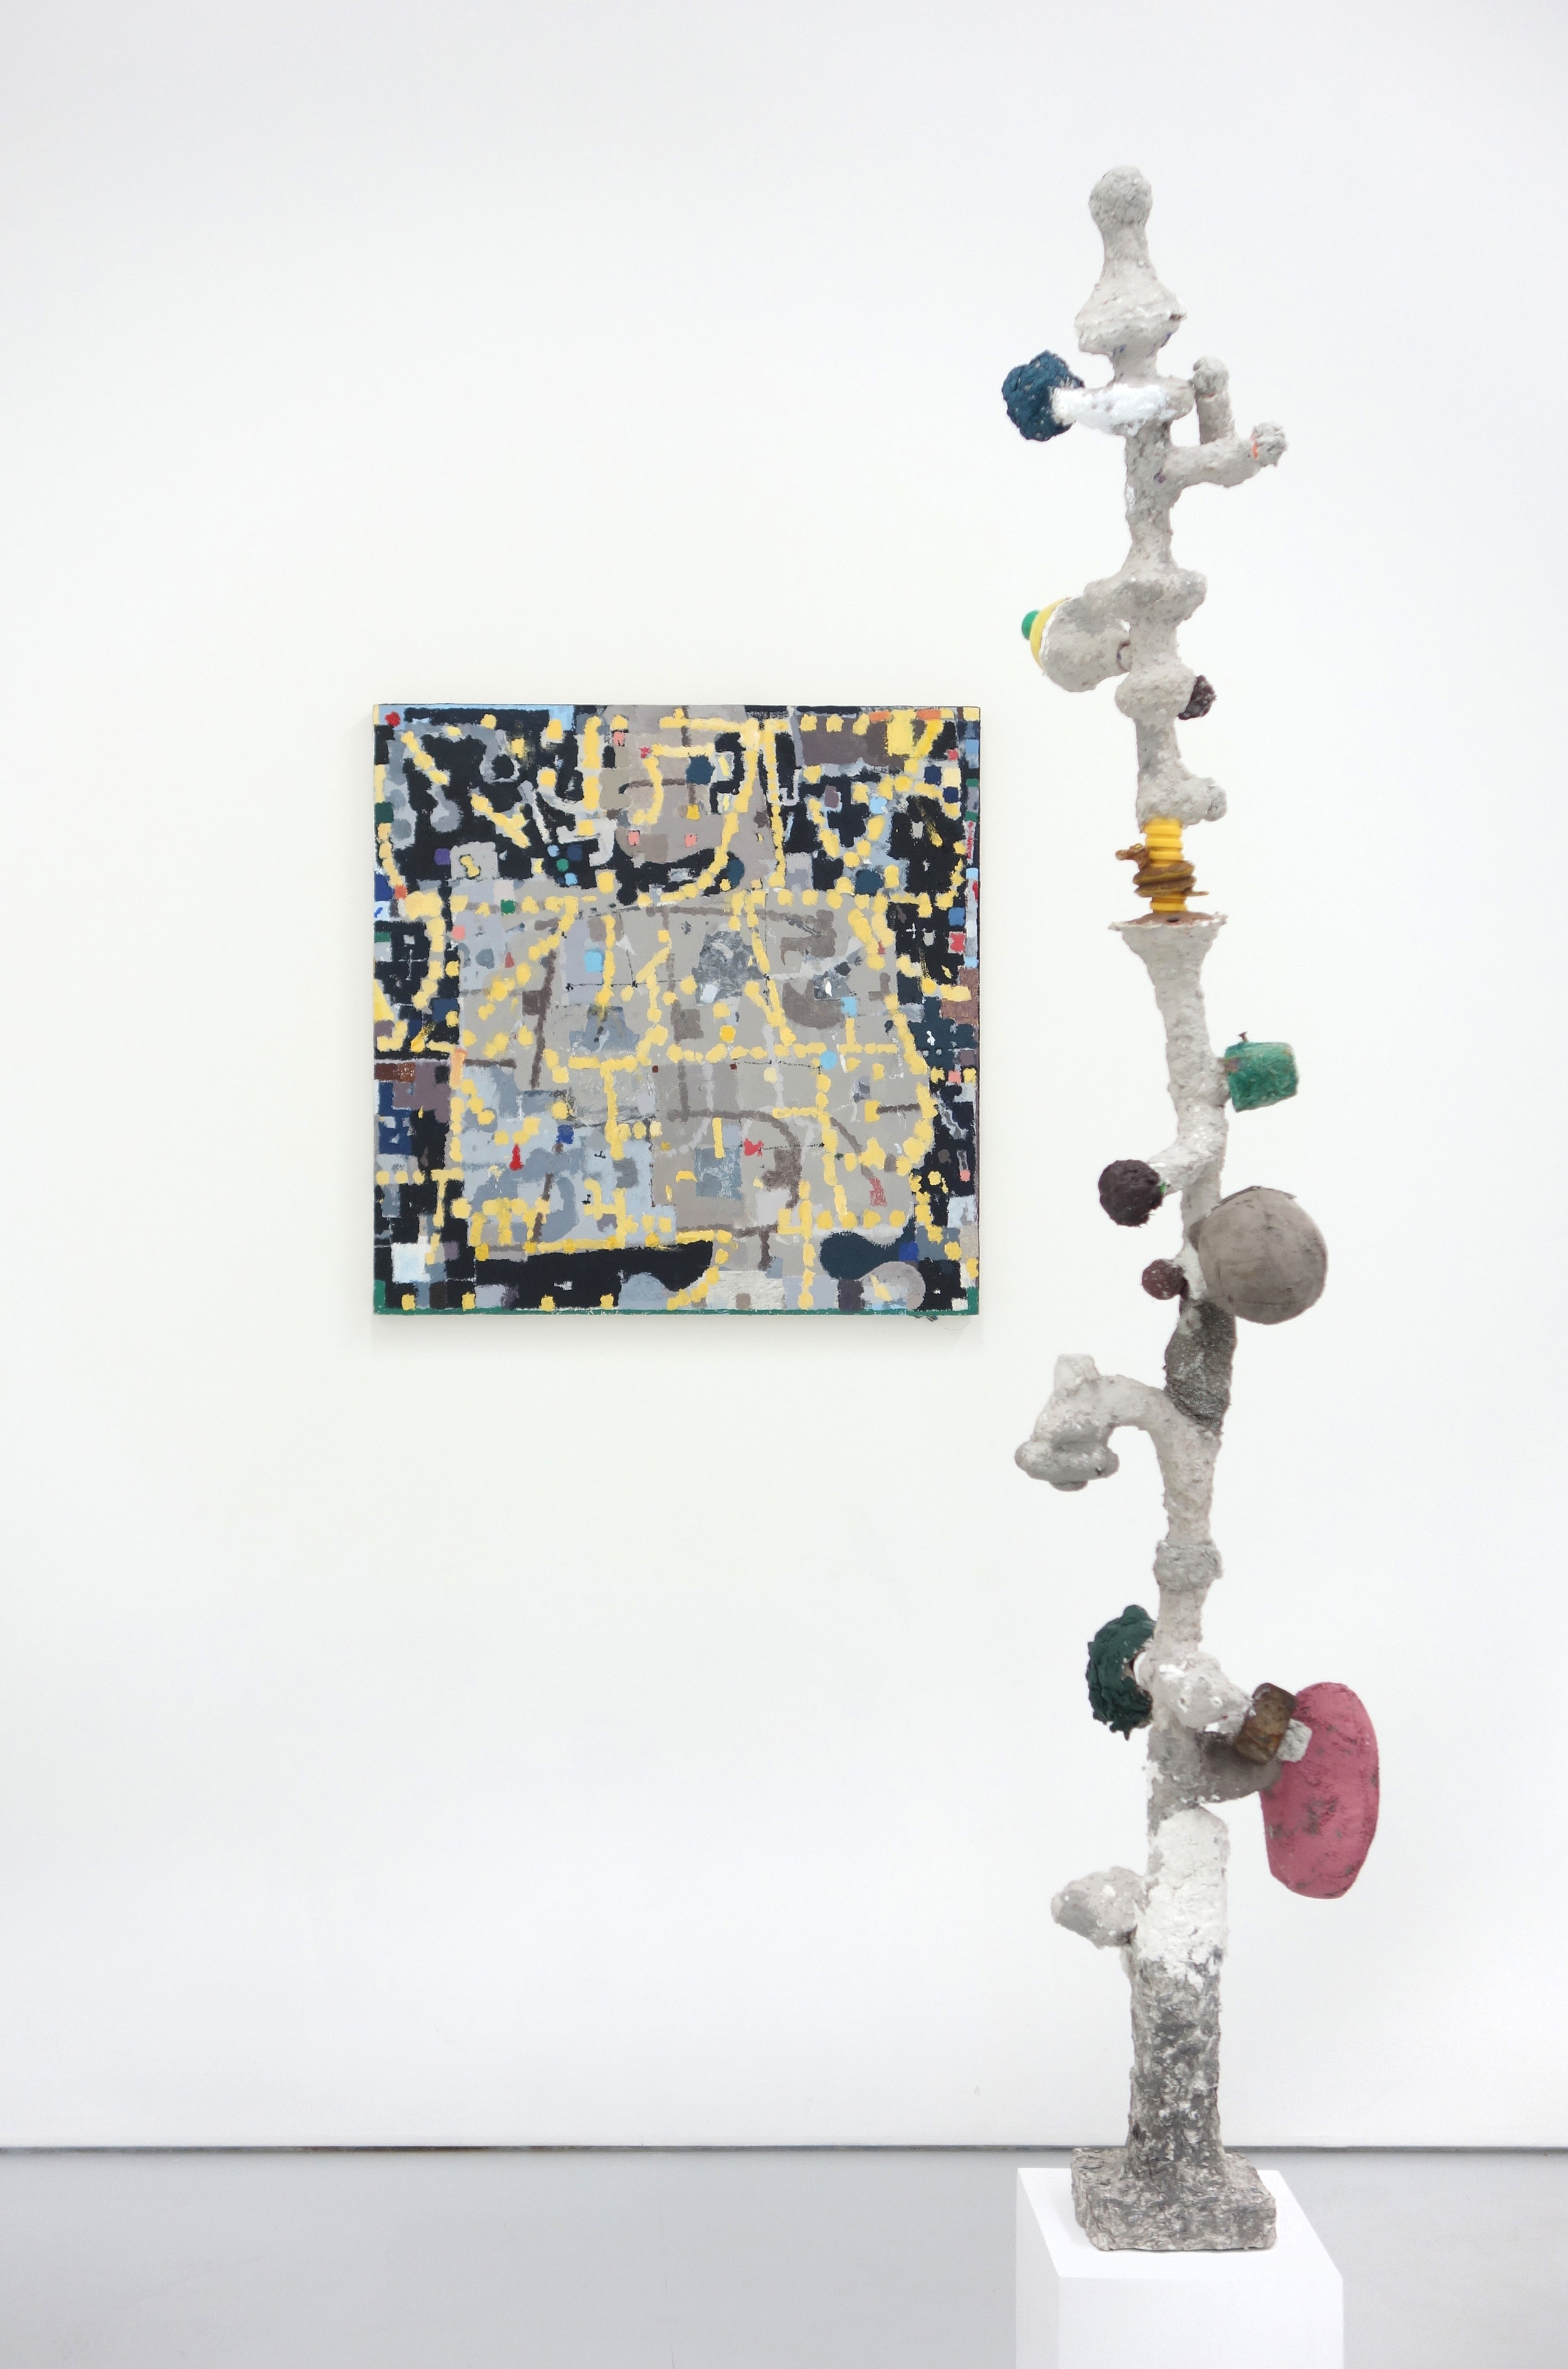 Jack Coyle tall sculpture and sq painting2.jpg